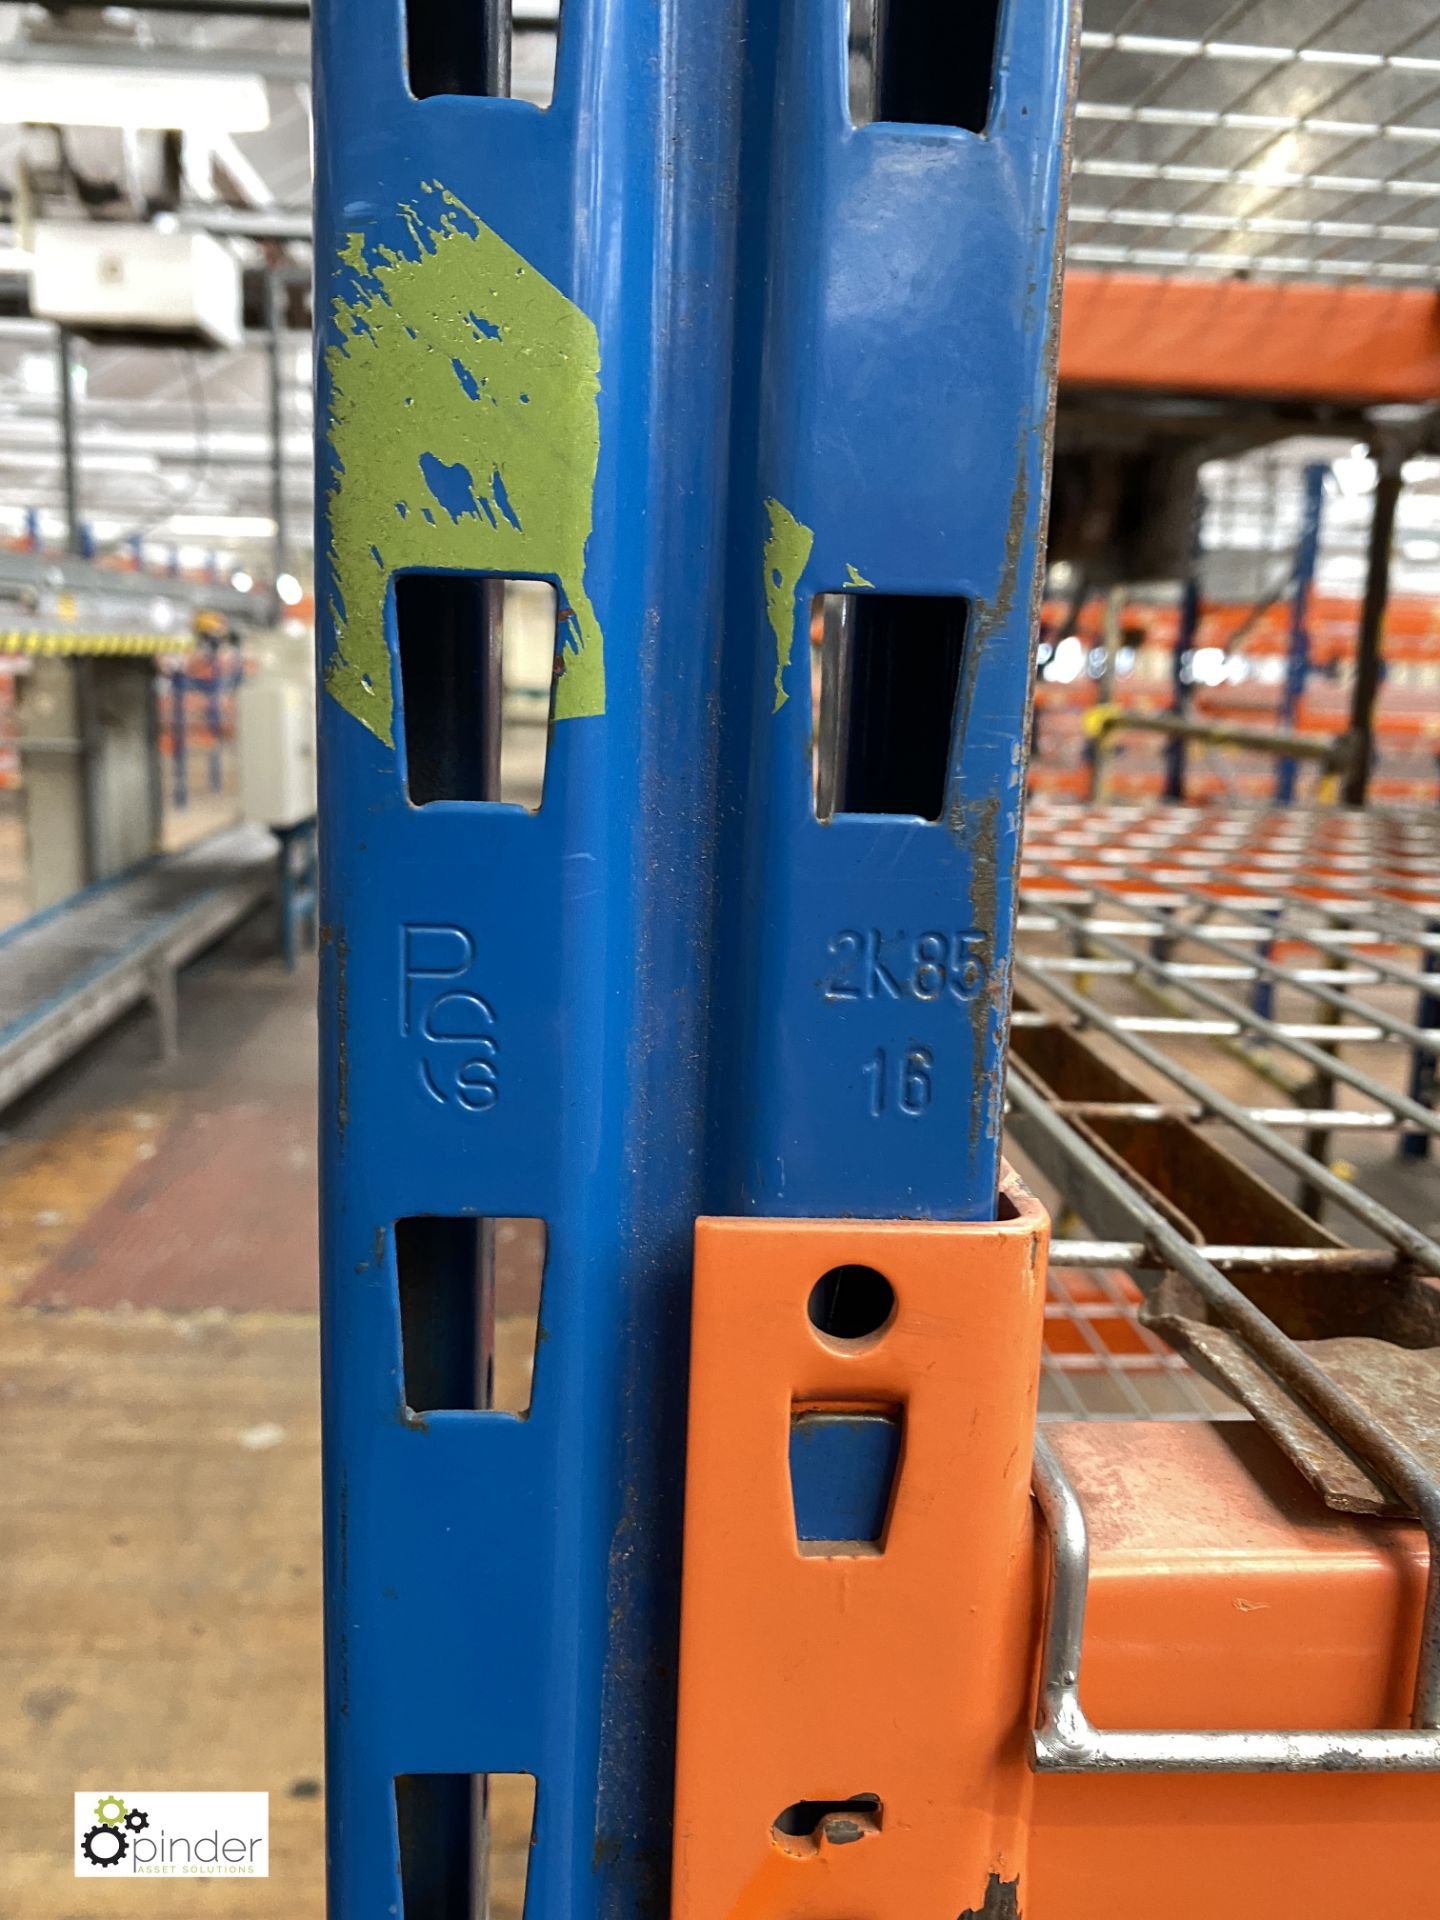 8 bays PSS 2K85 16 boltless Stock Racking, comprising 9 uprights 2400mm x 1200mm, 64 beams 2700mm, - Image 5 of 5